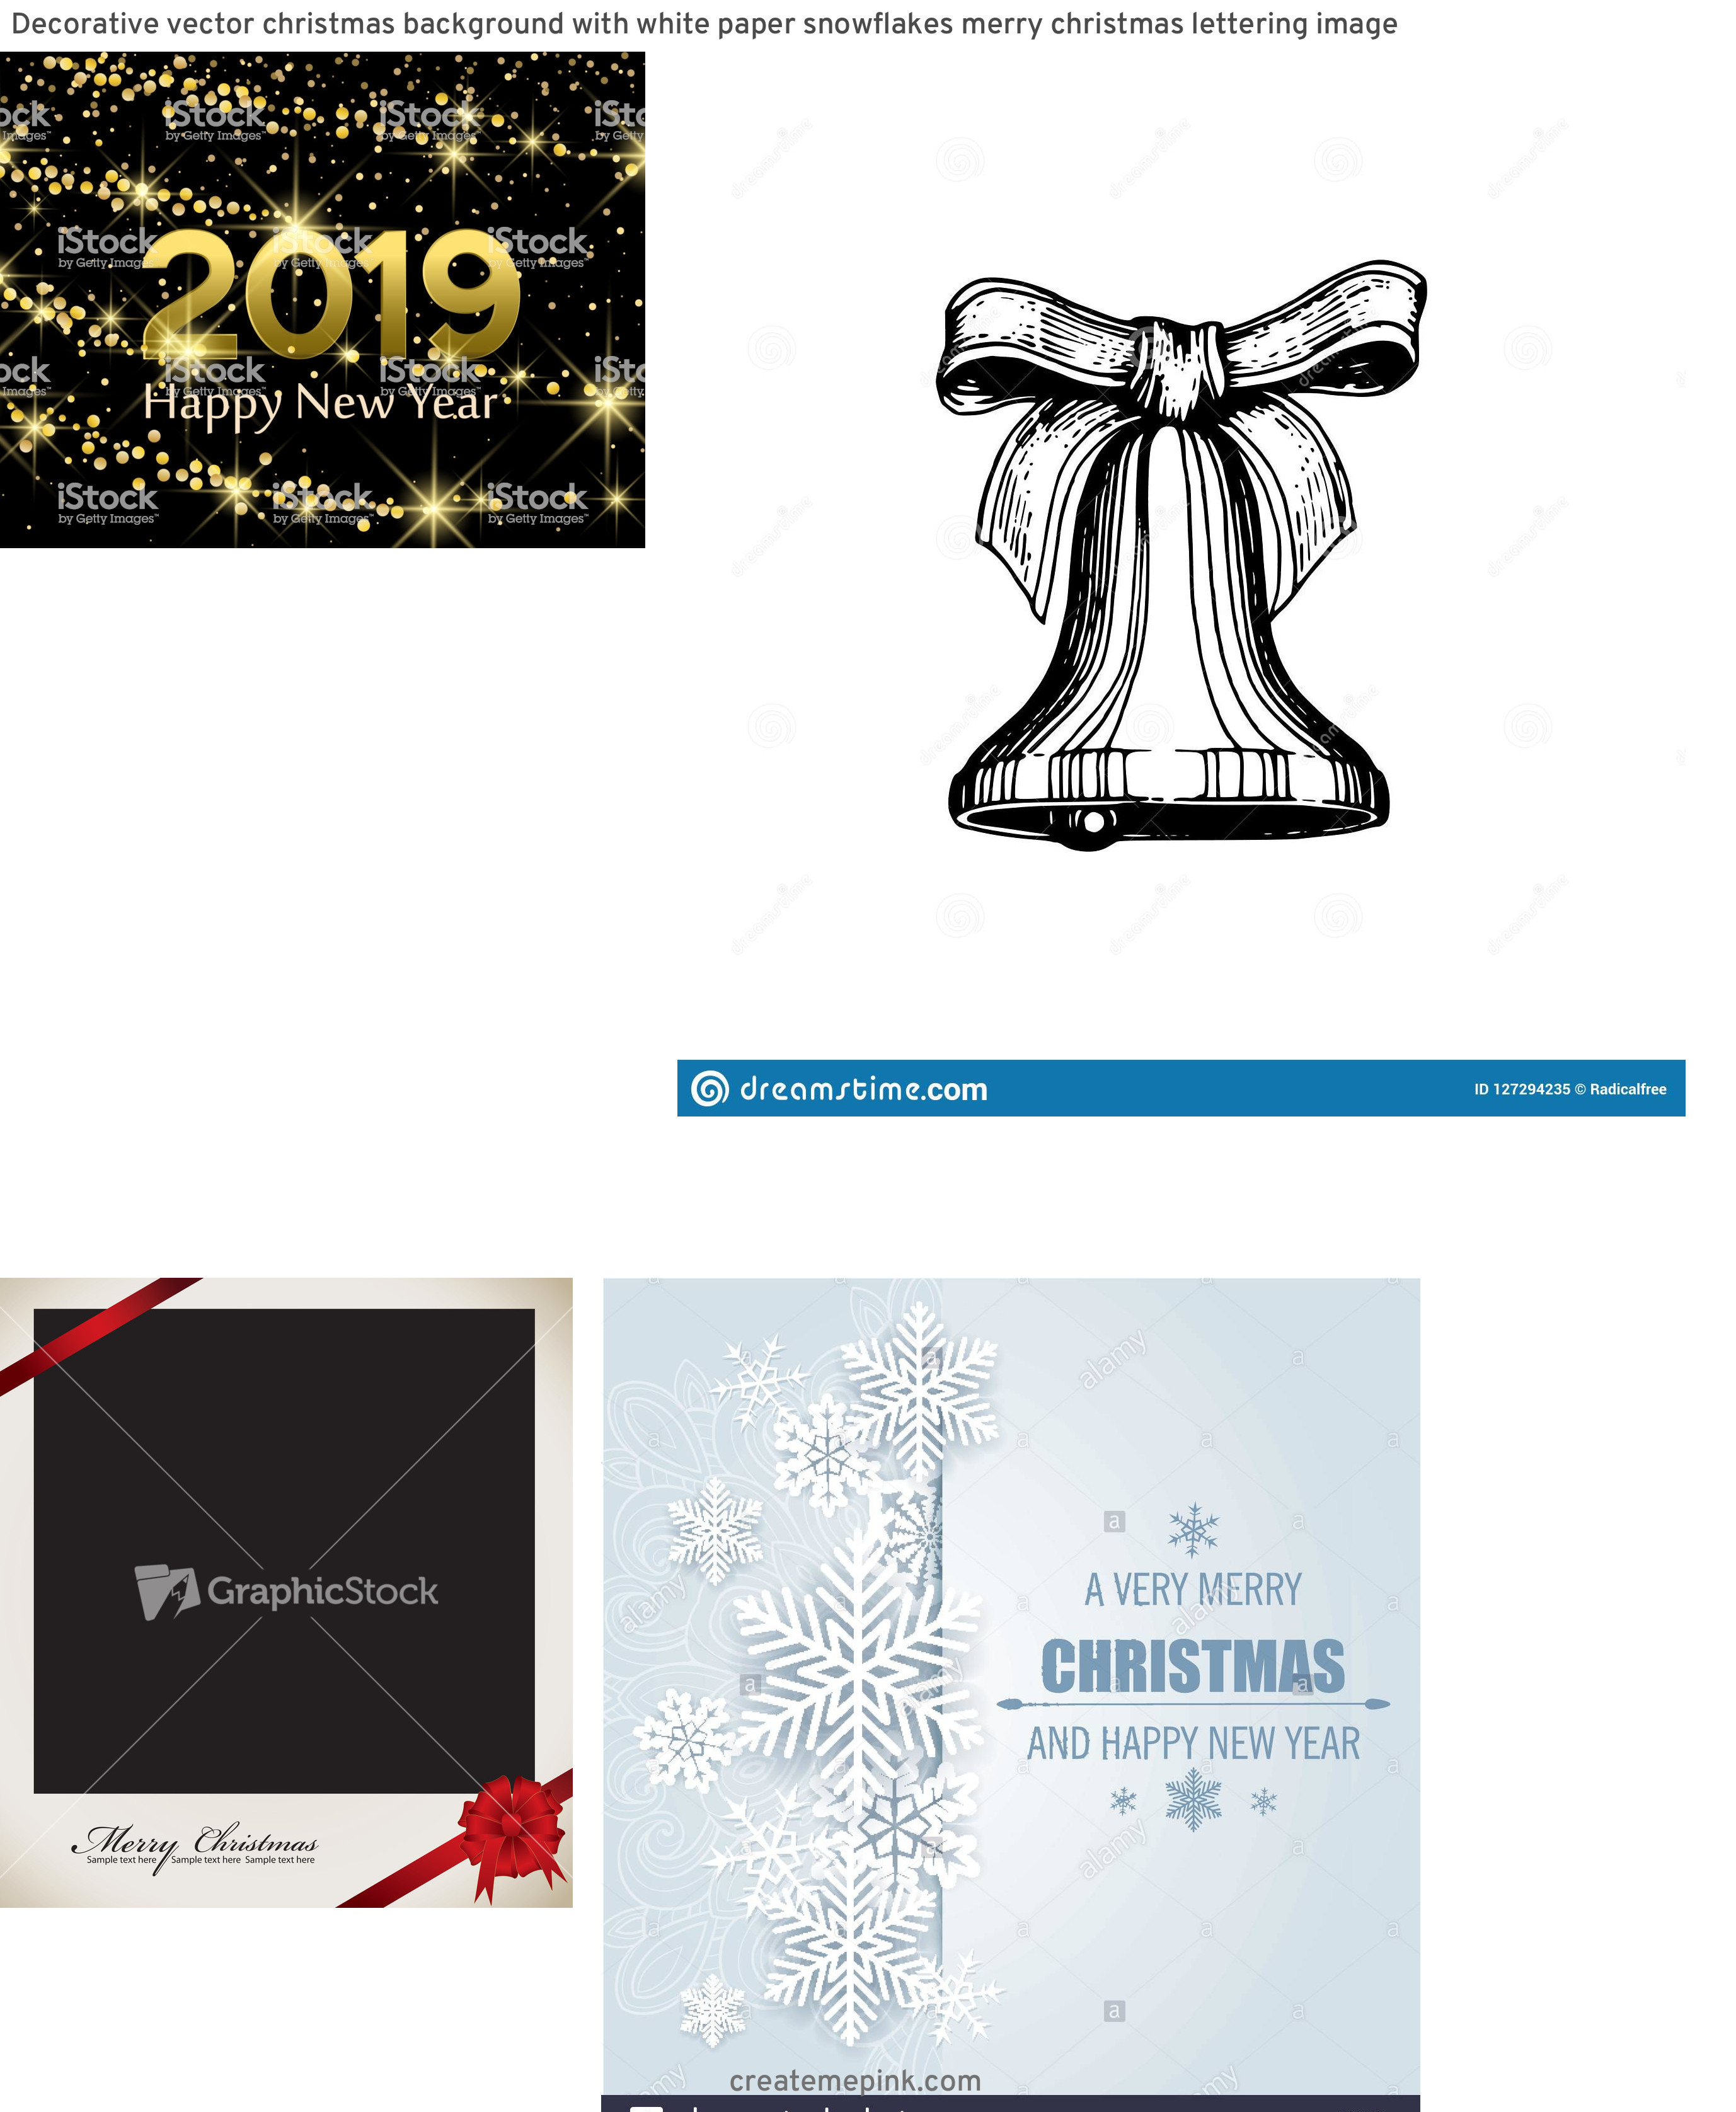 Vector Christmas Background Cross: Decorative Vector Christmas Background With White Paper Snowflakes Merry Christmas Lettering Image